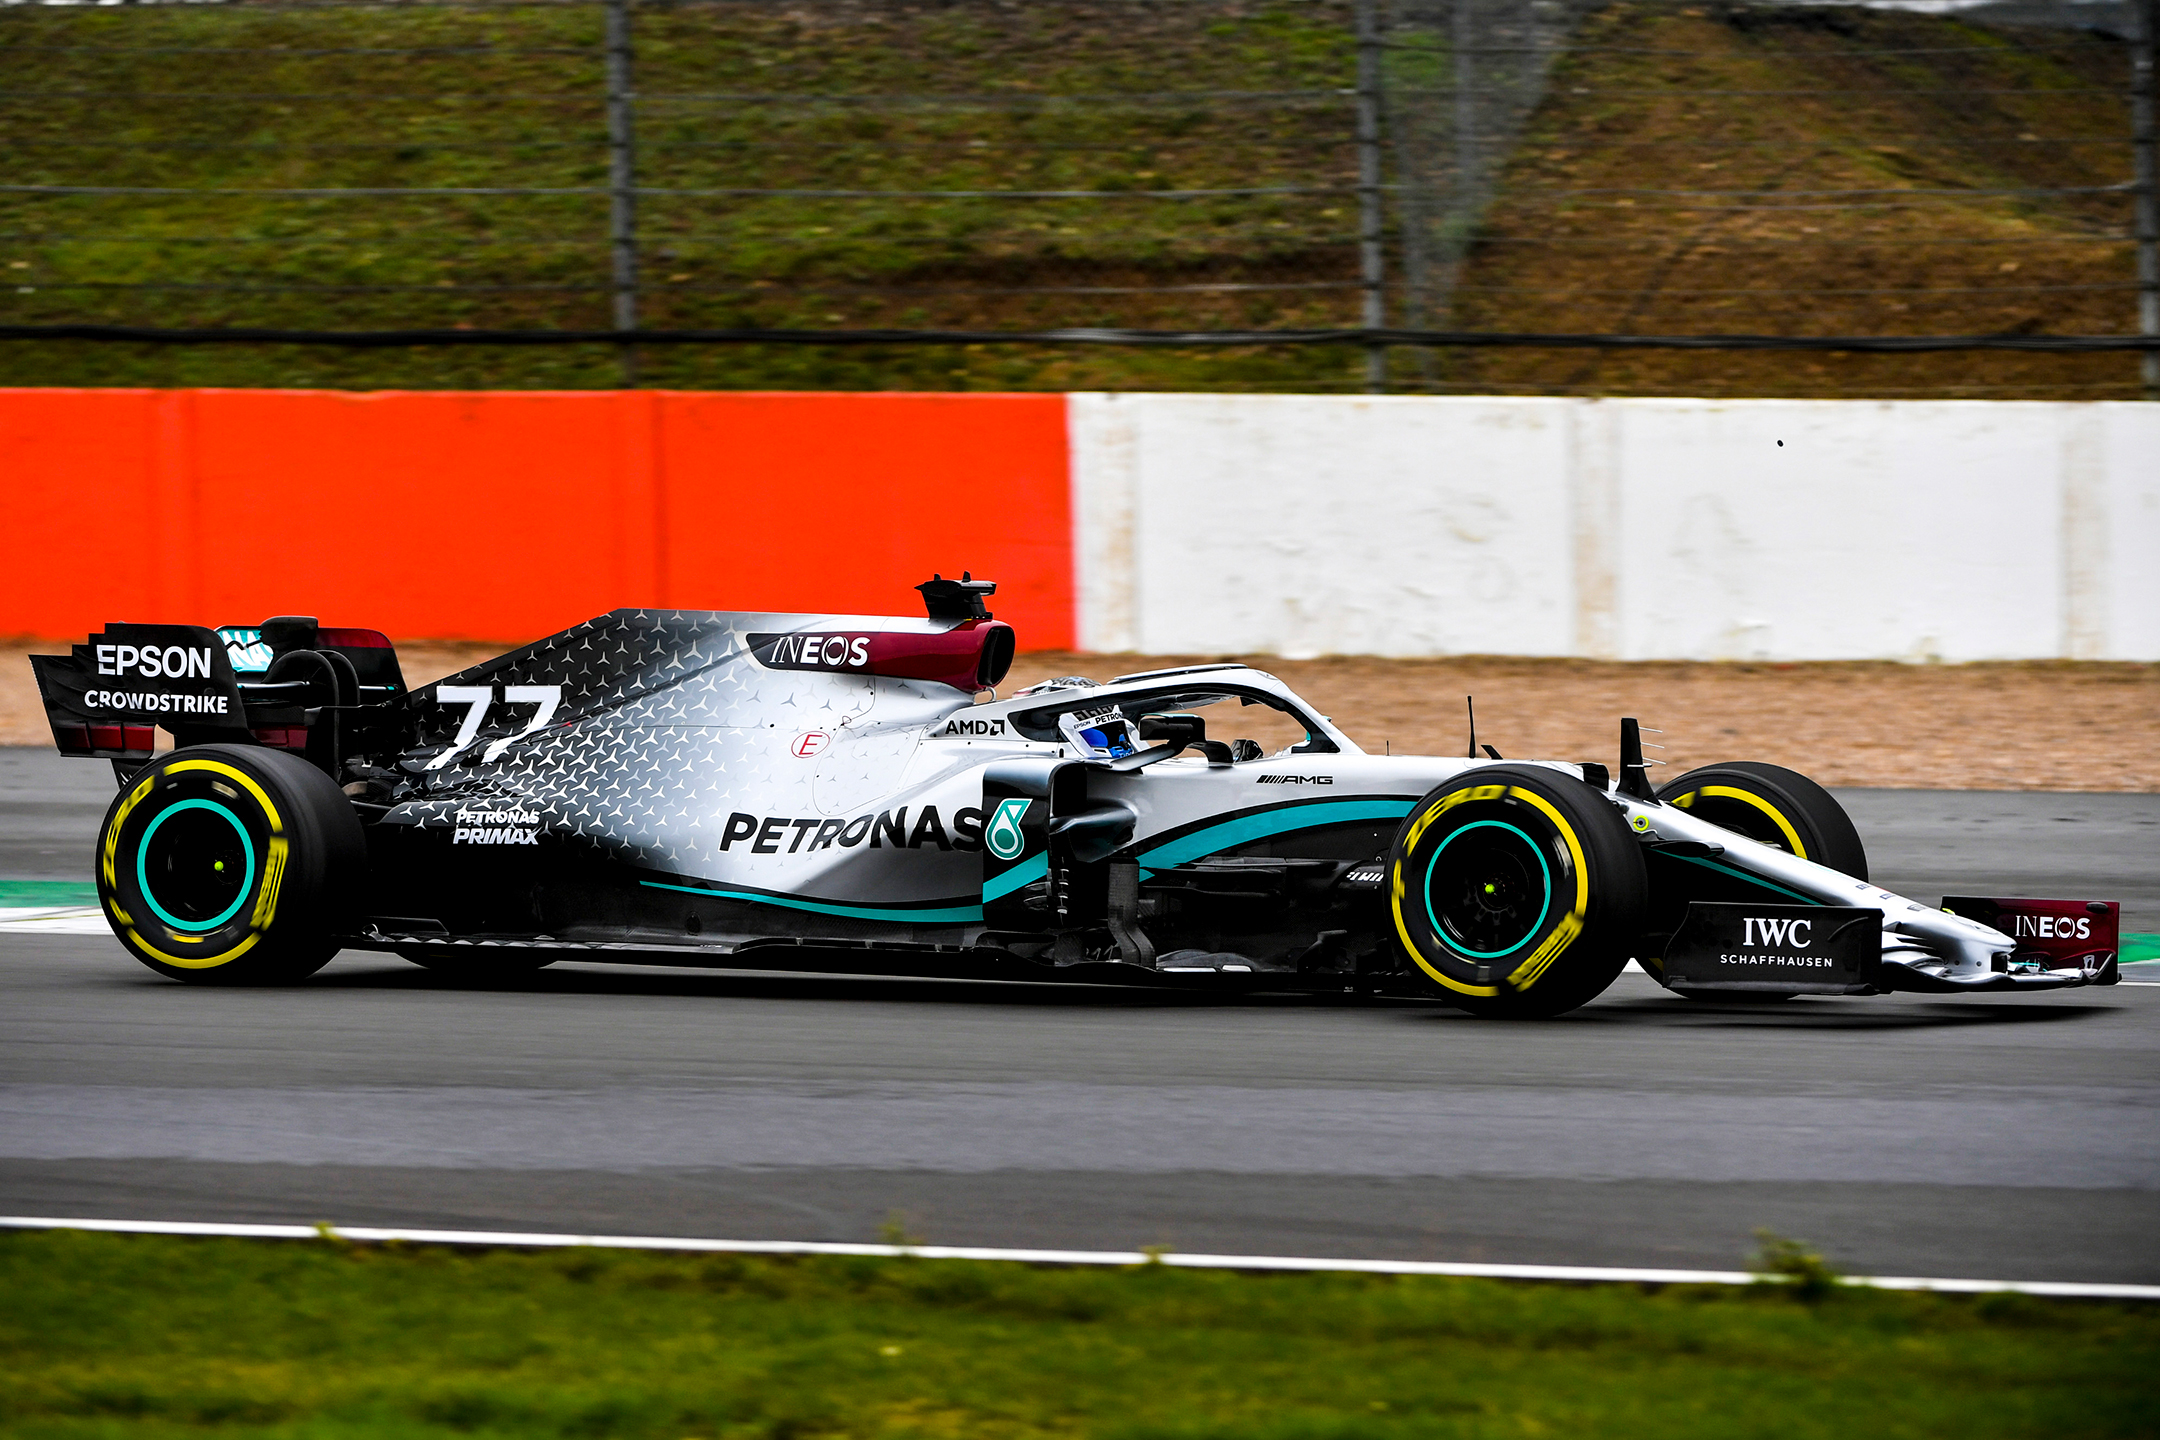 F1 - Mercedes-AMG - W11 - 2020 - side-face - on track - Silverstone